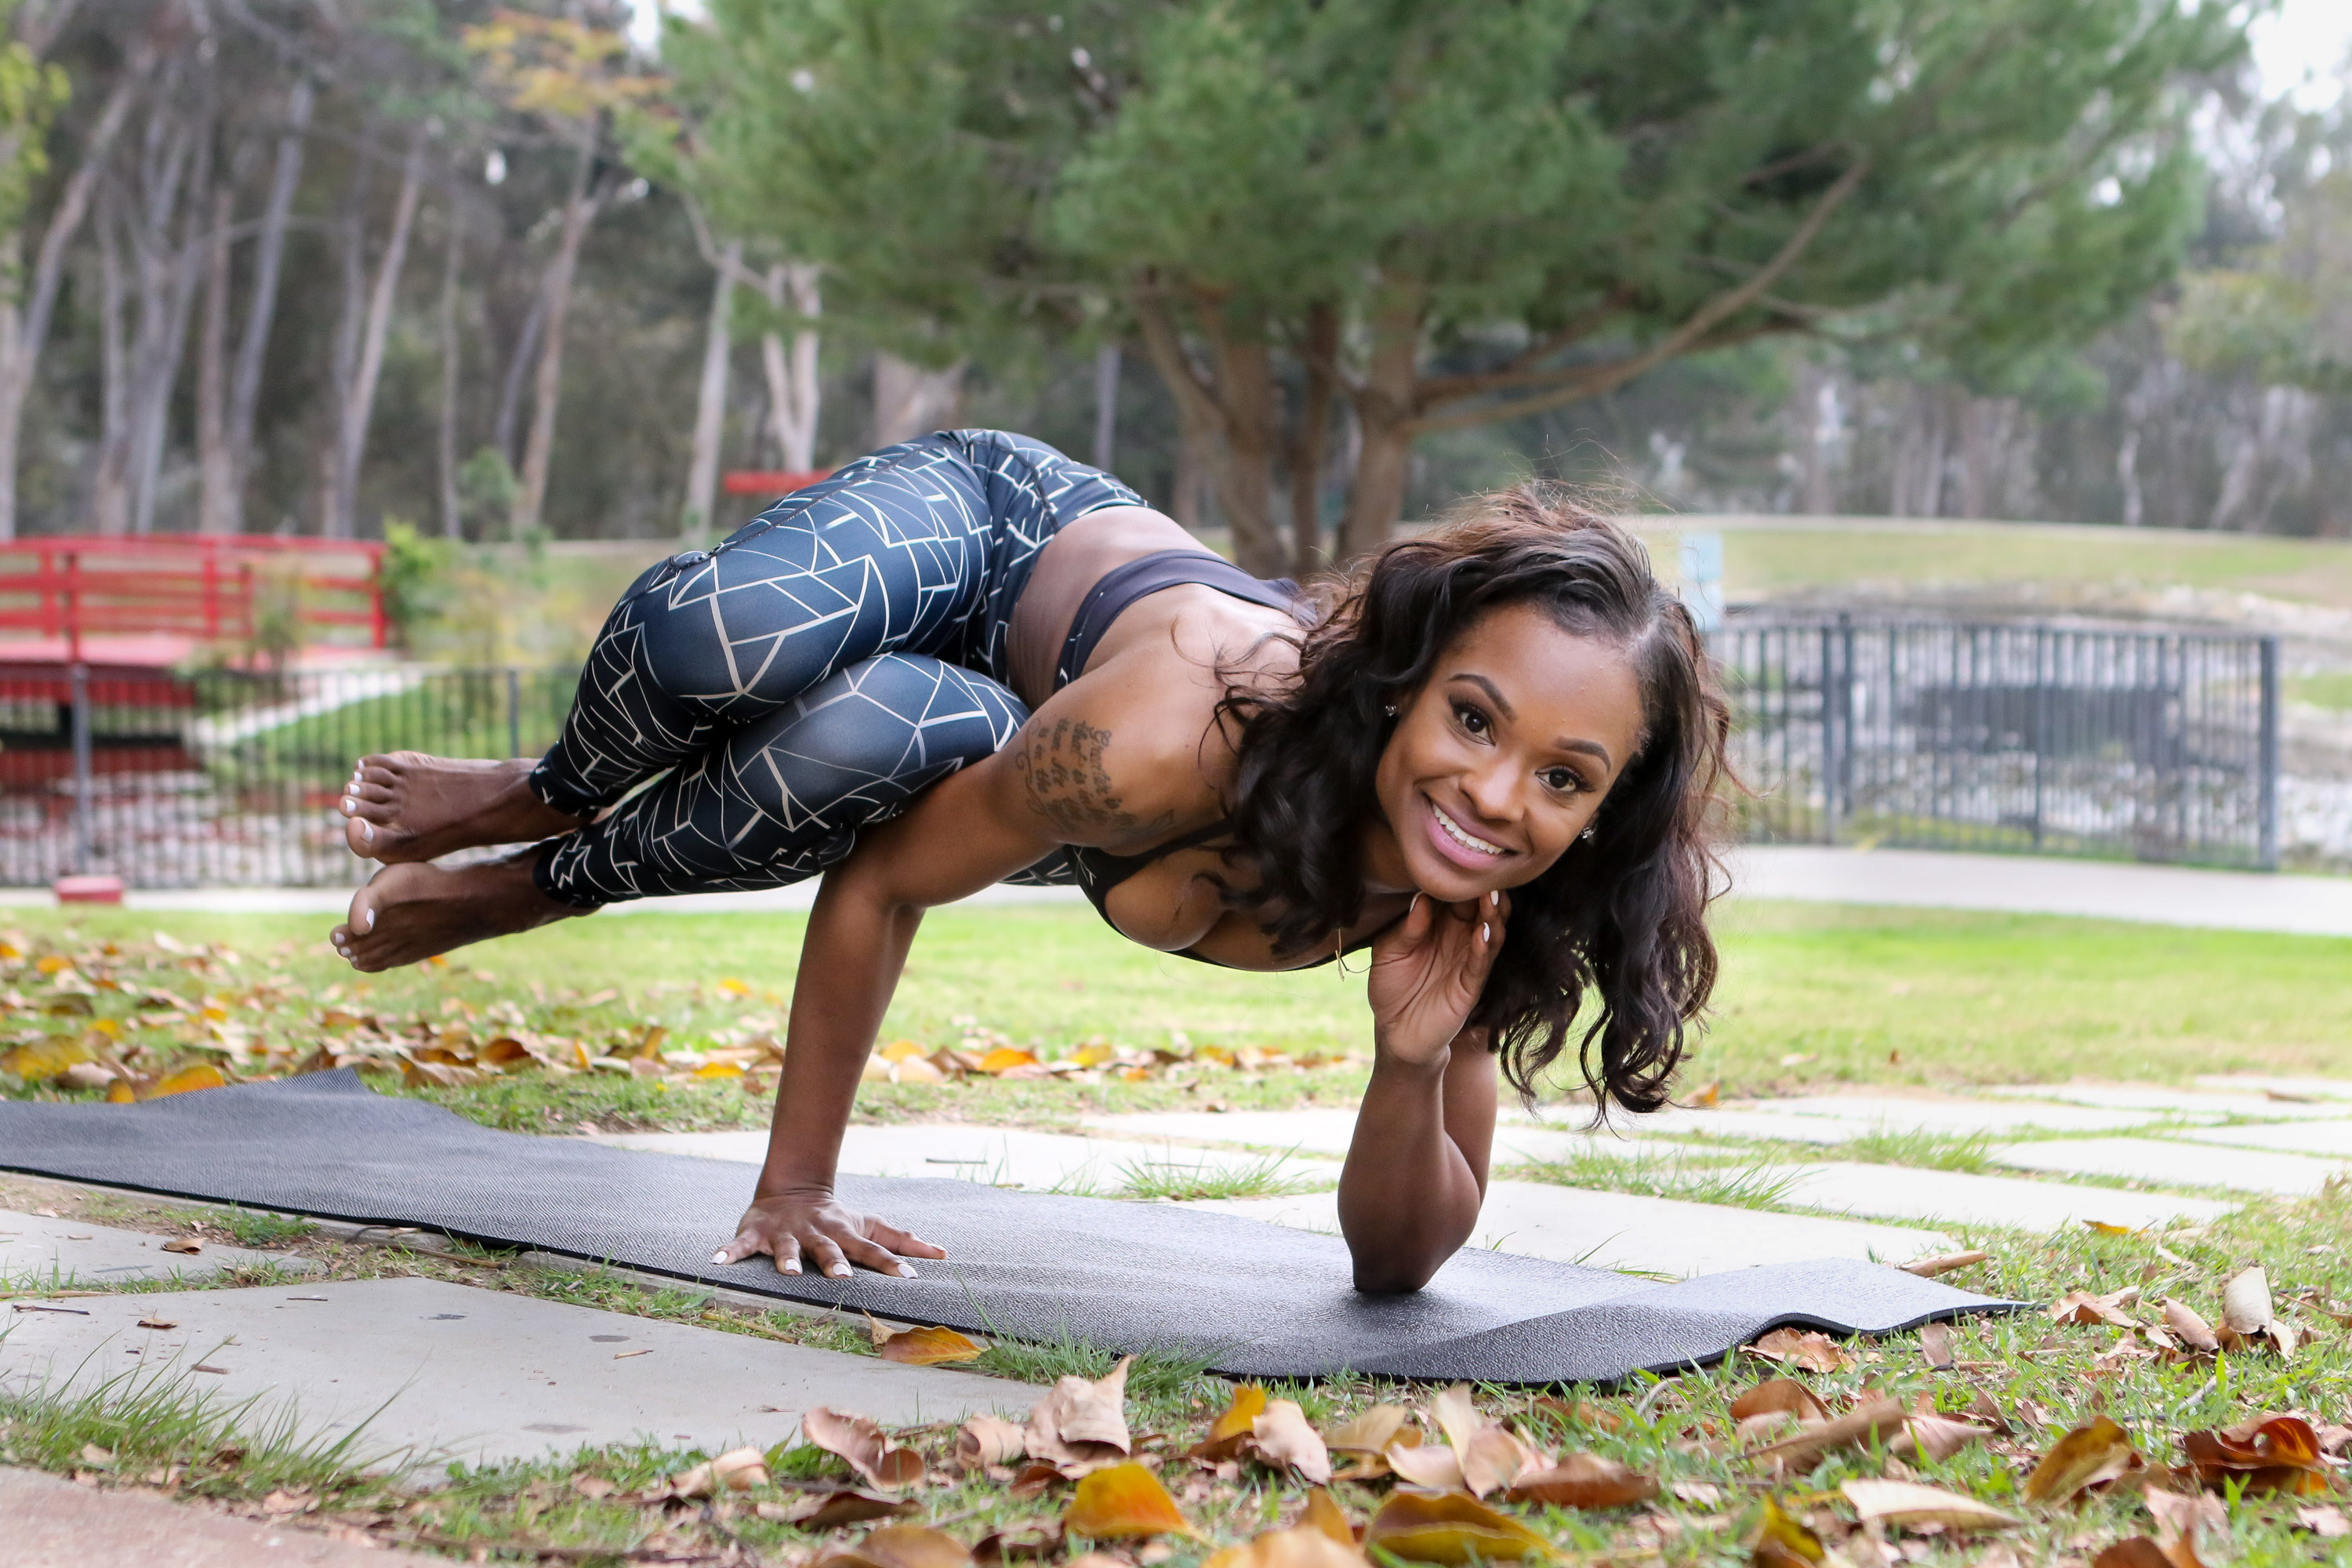 21 Day Yoga Challenge Pose Salena Collins - Photo by Jevone Moore / Full Image 360